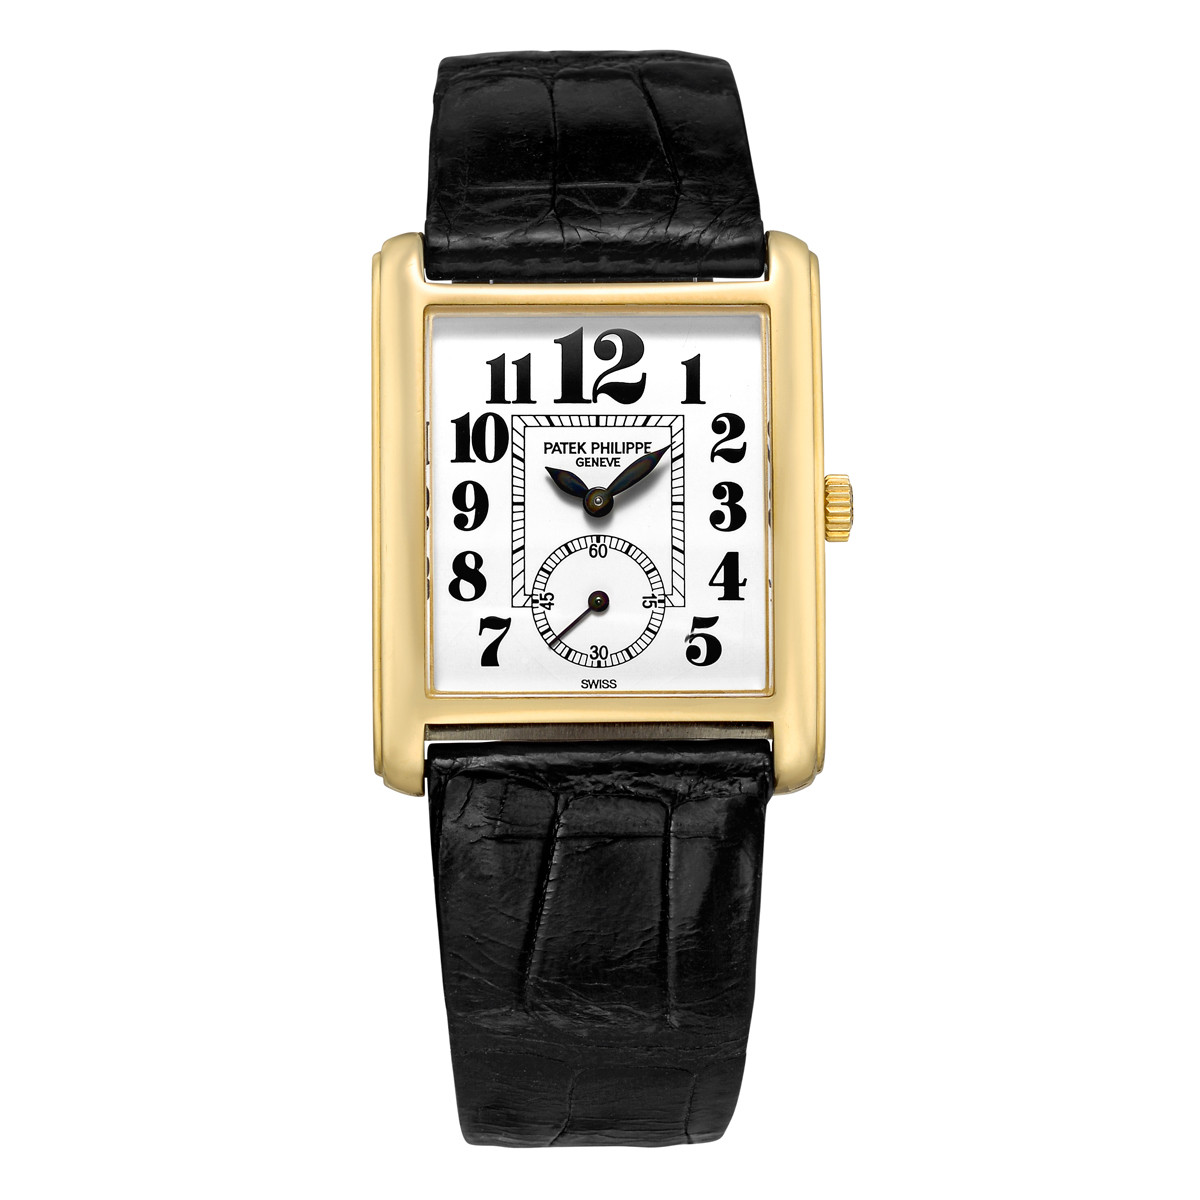 Gondolo Yellow Gold (5014J-015)